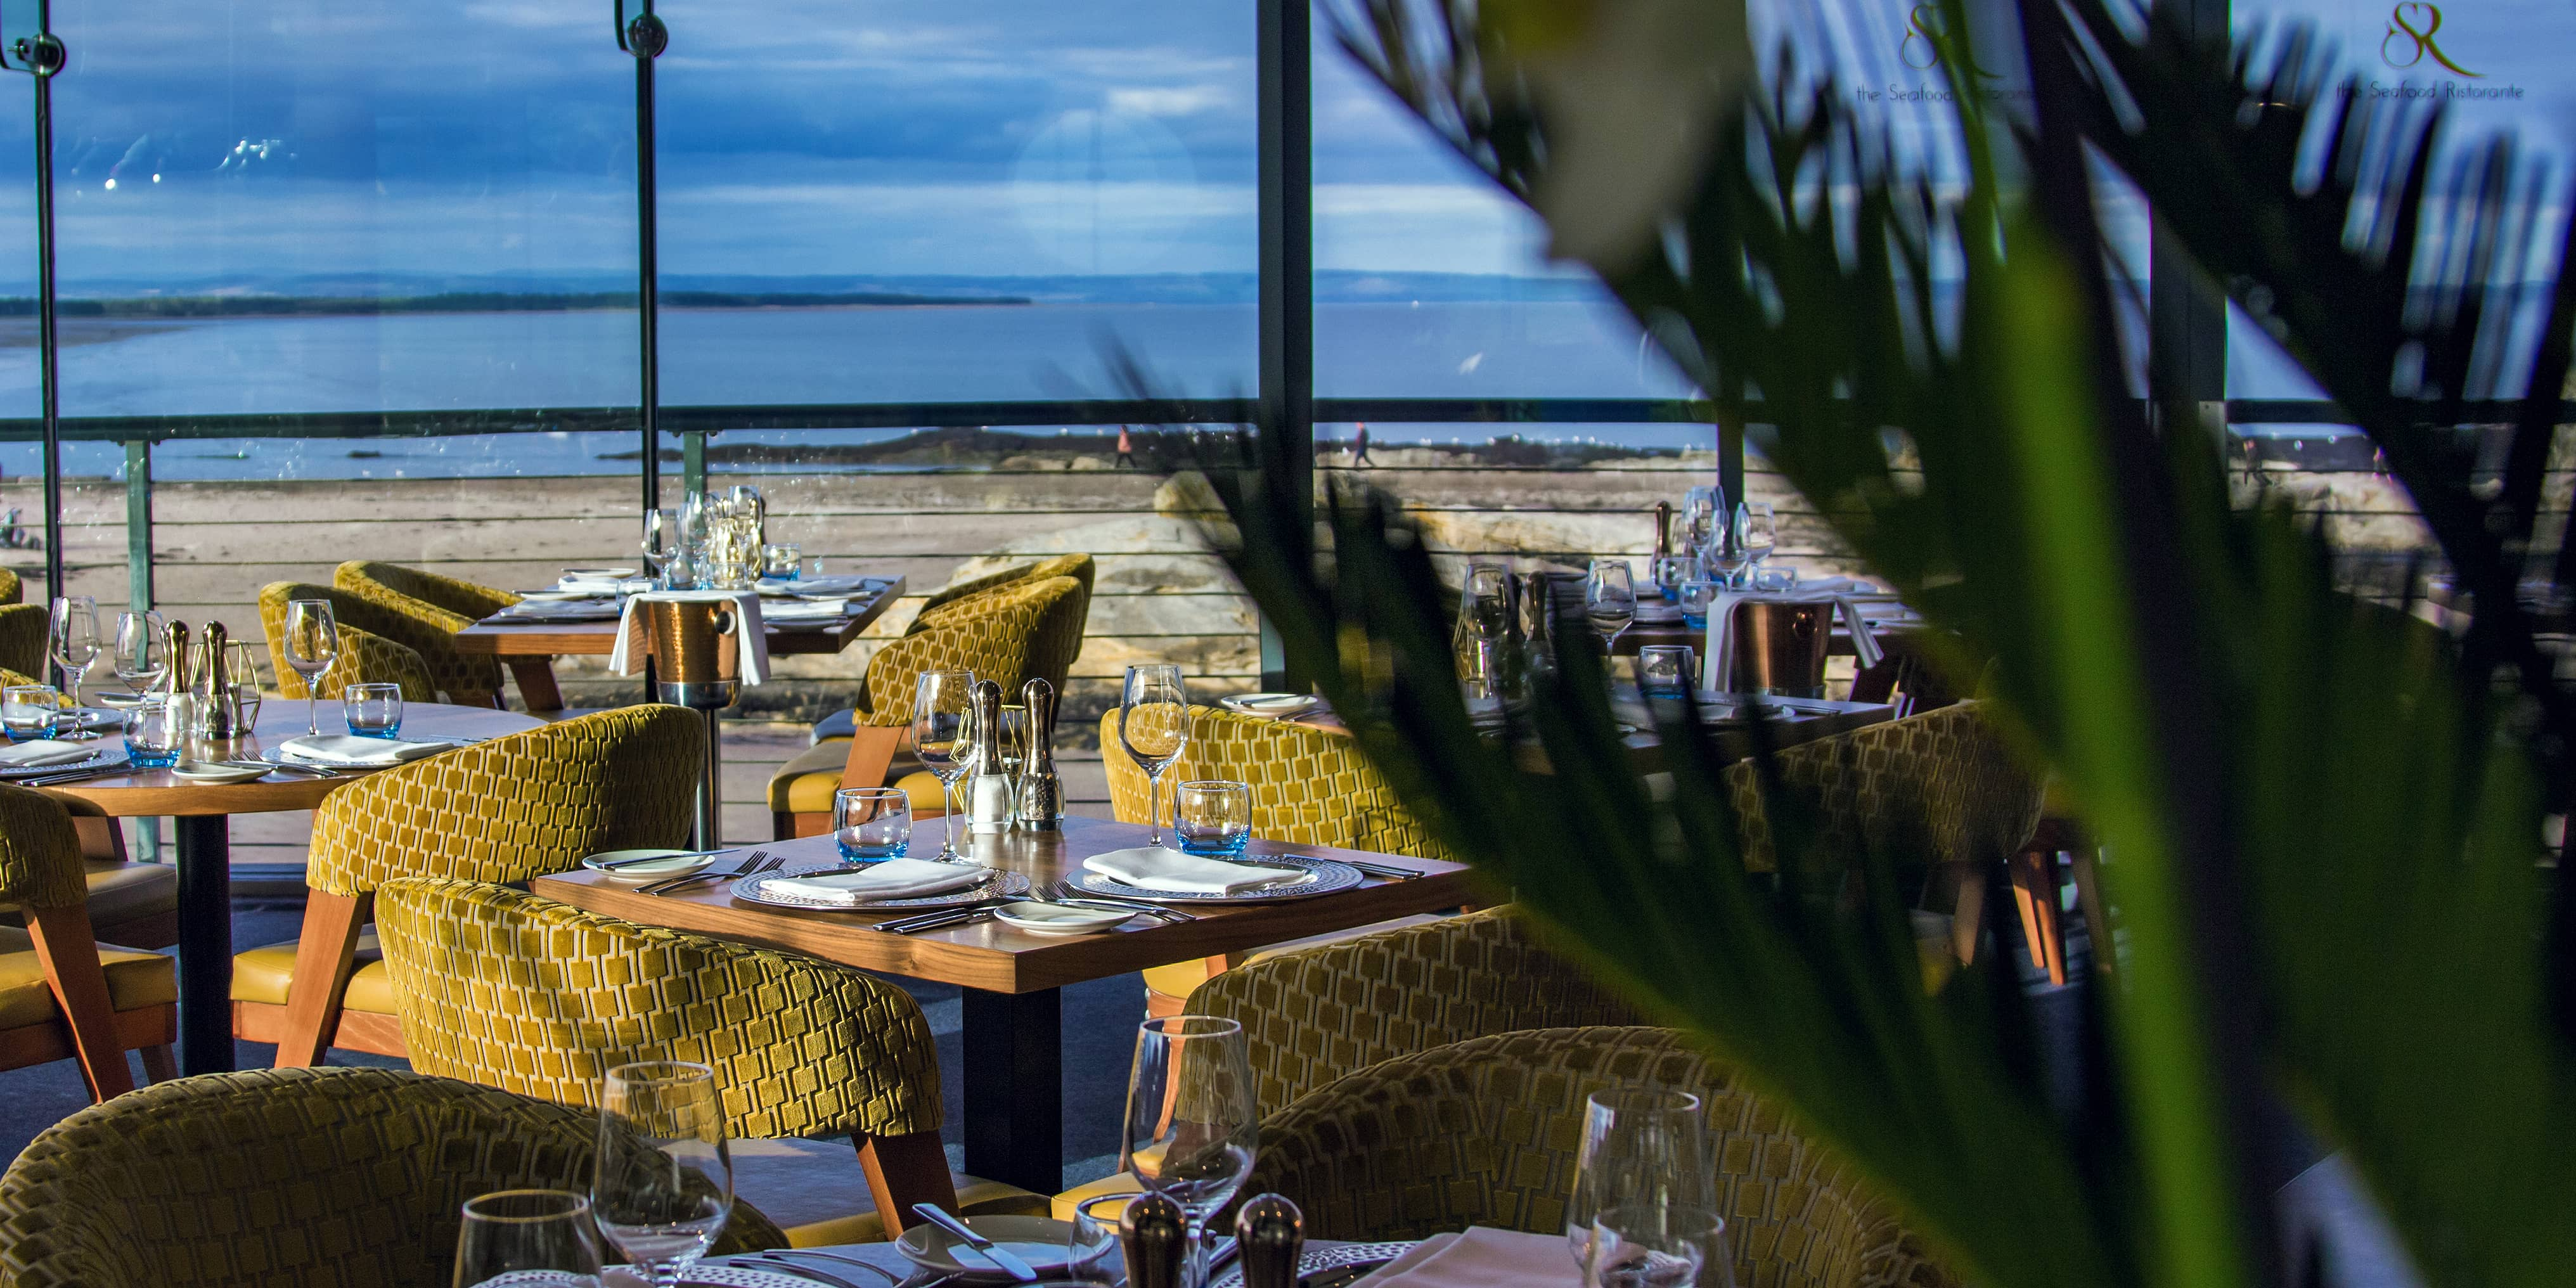 The Seafood Ristorante St Andrews